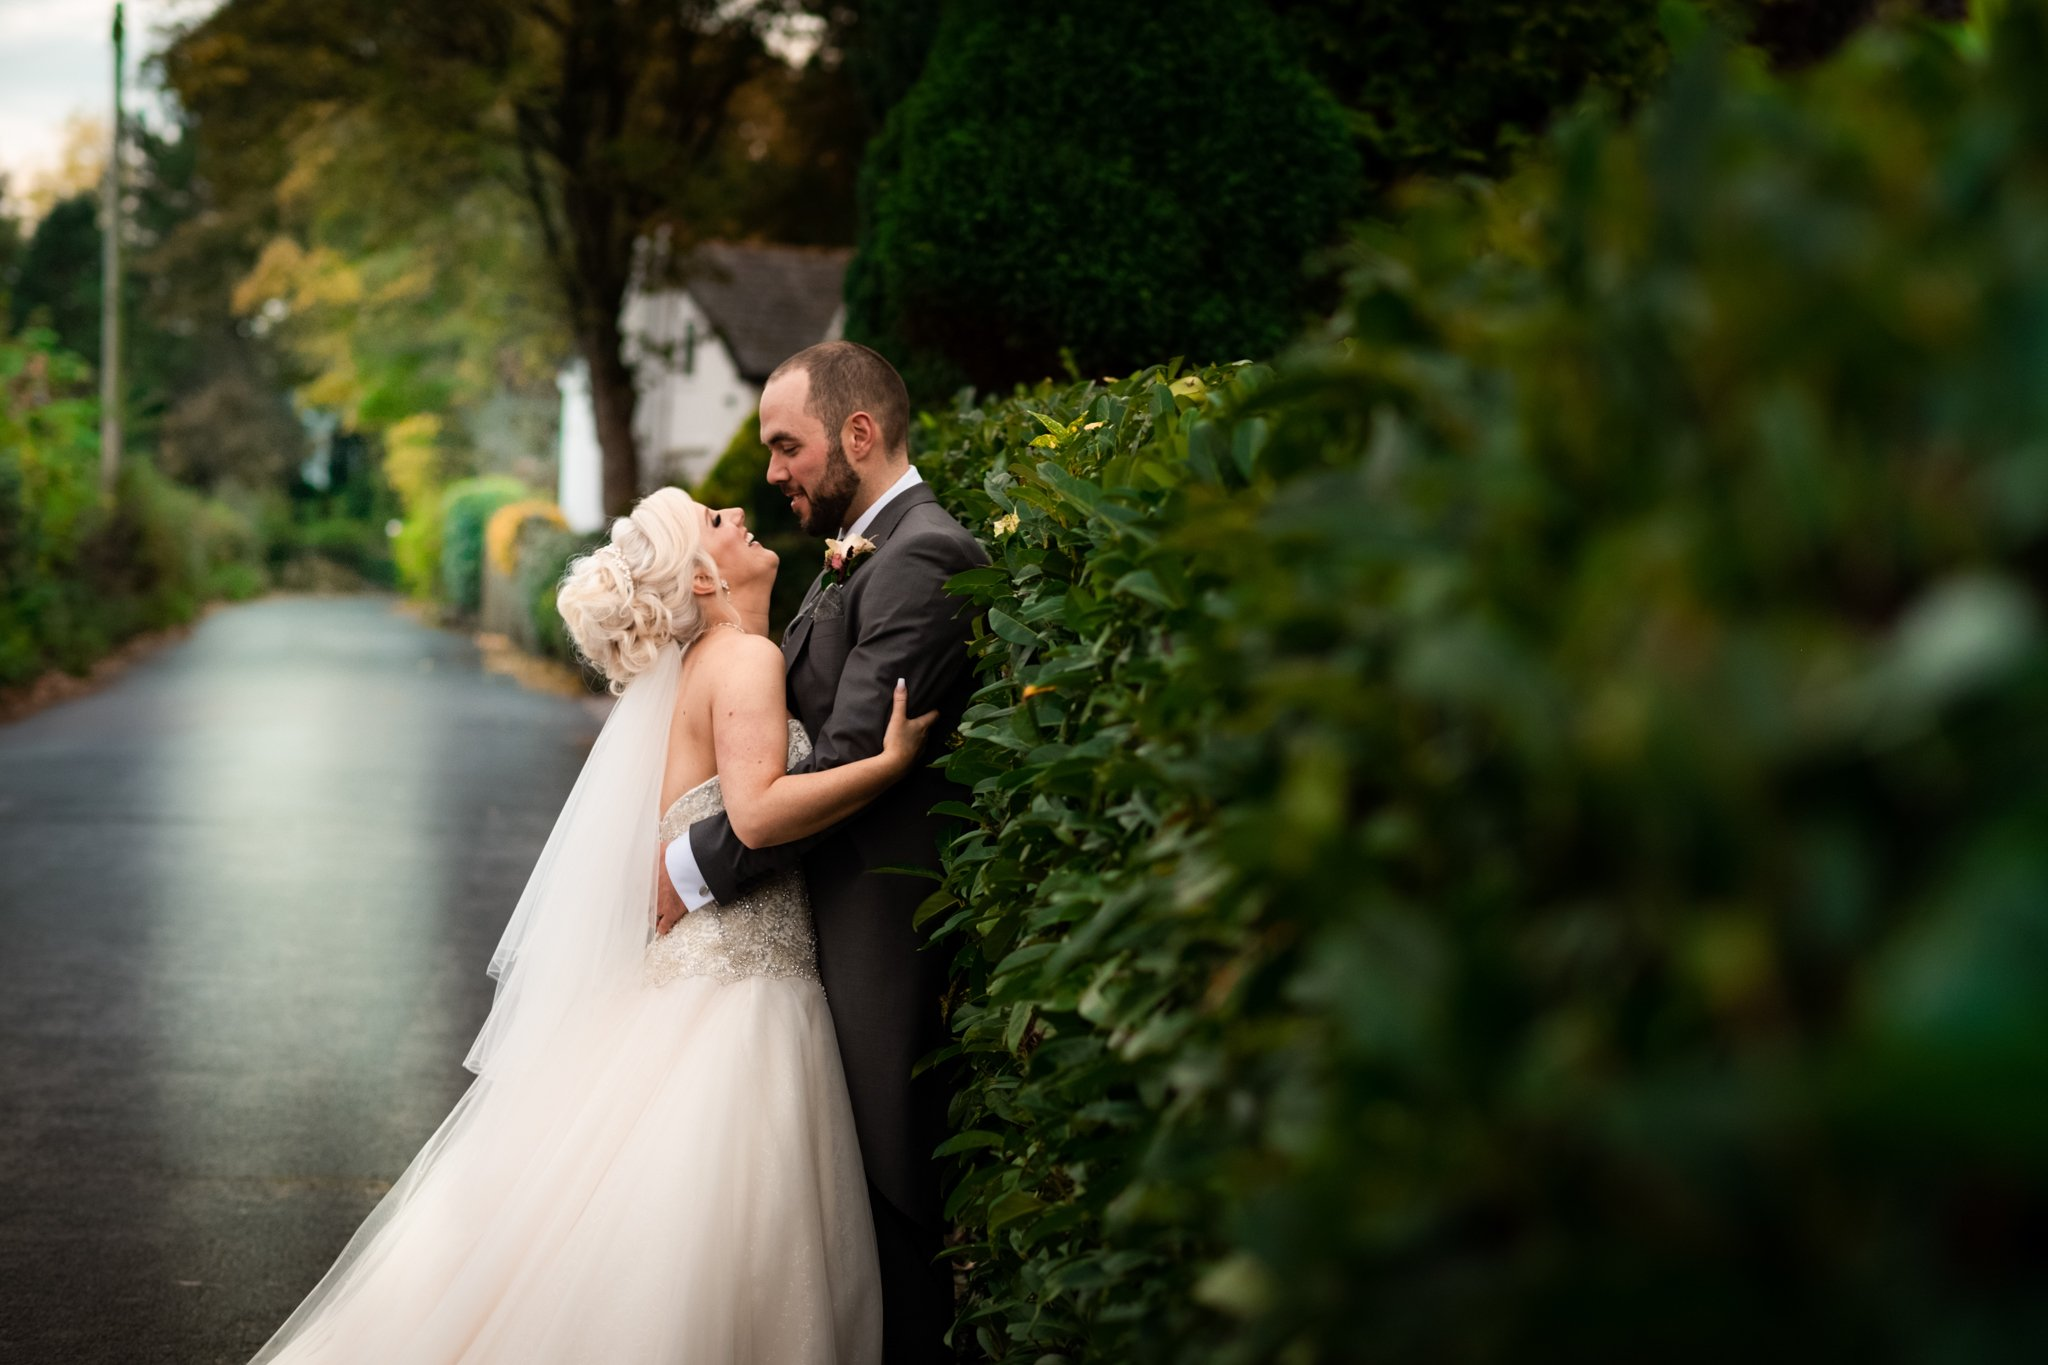 Liverpool-wedding-photographer-218